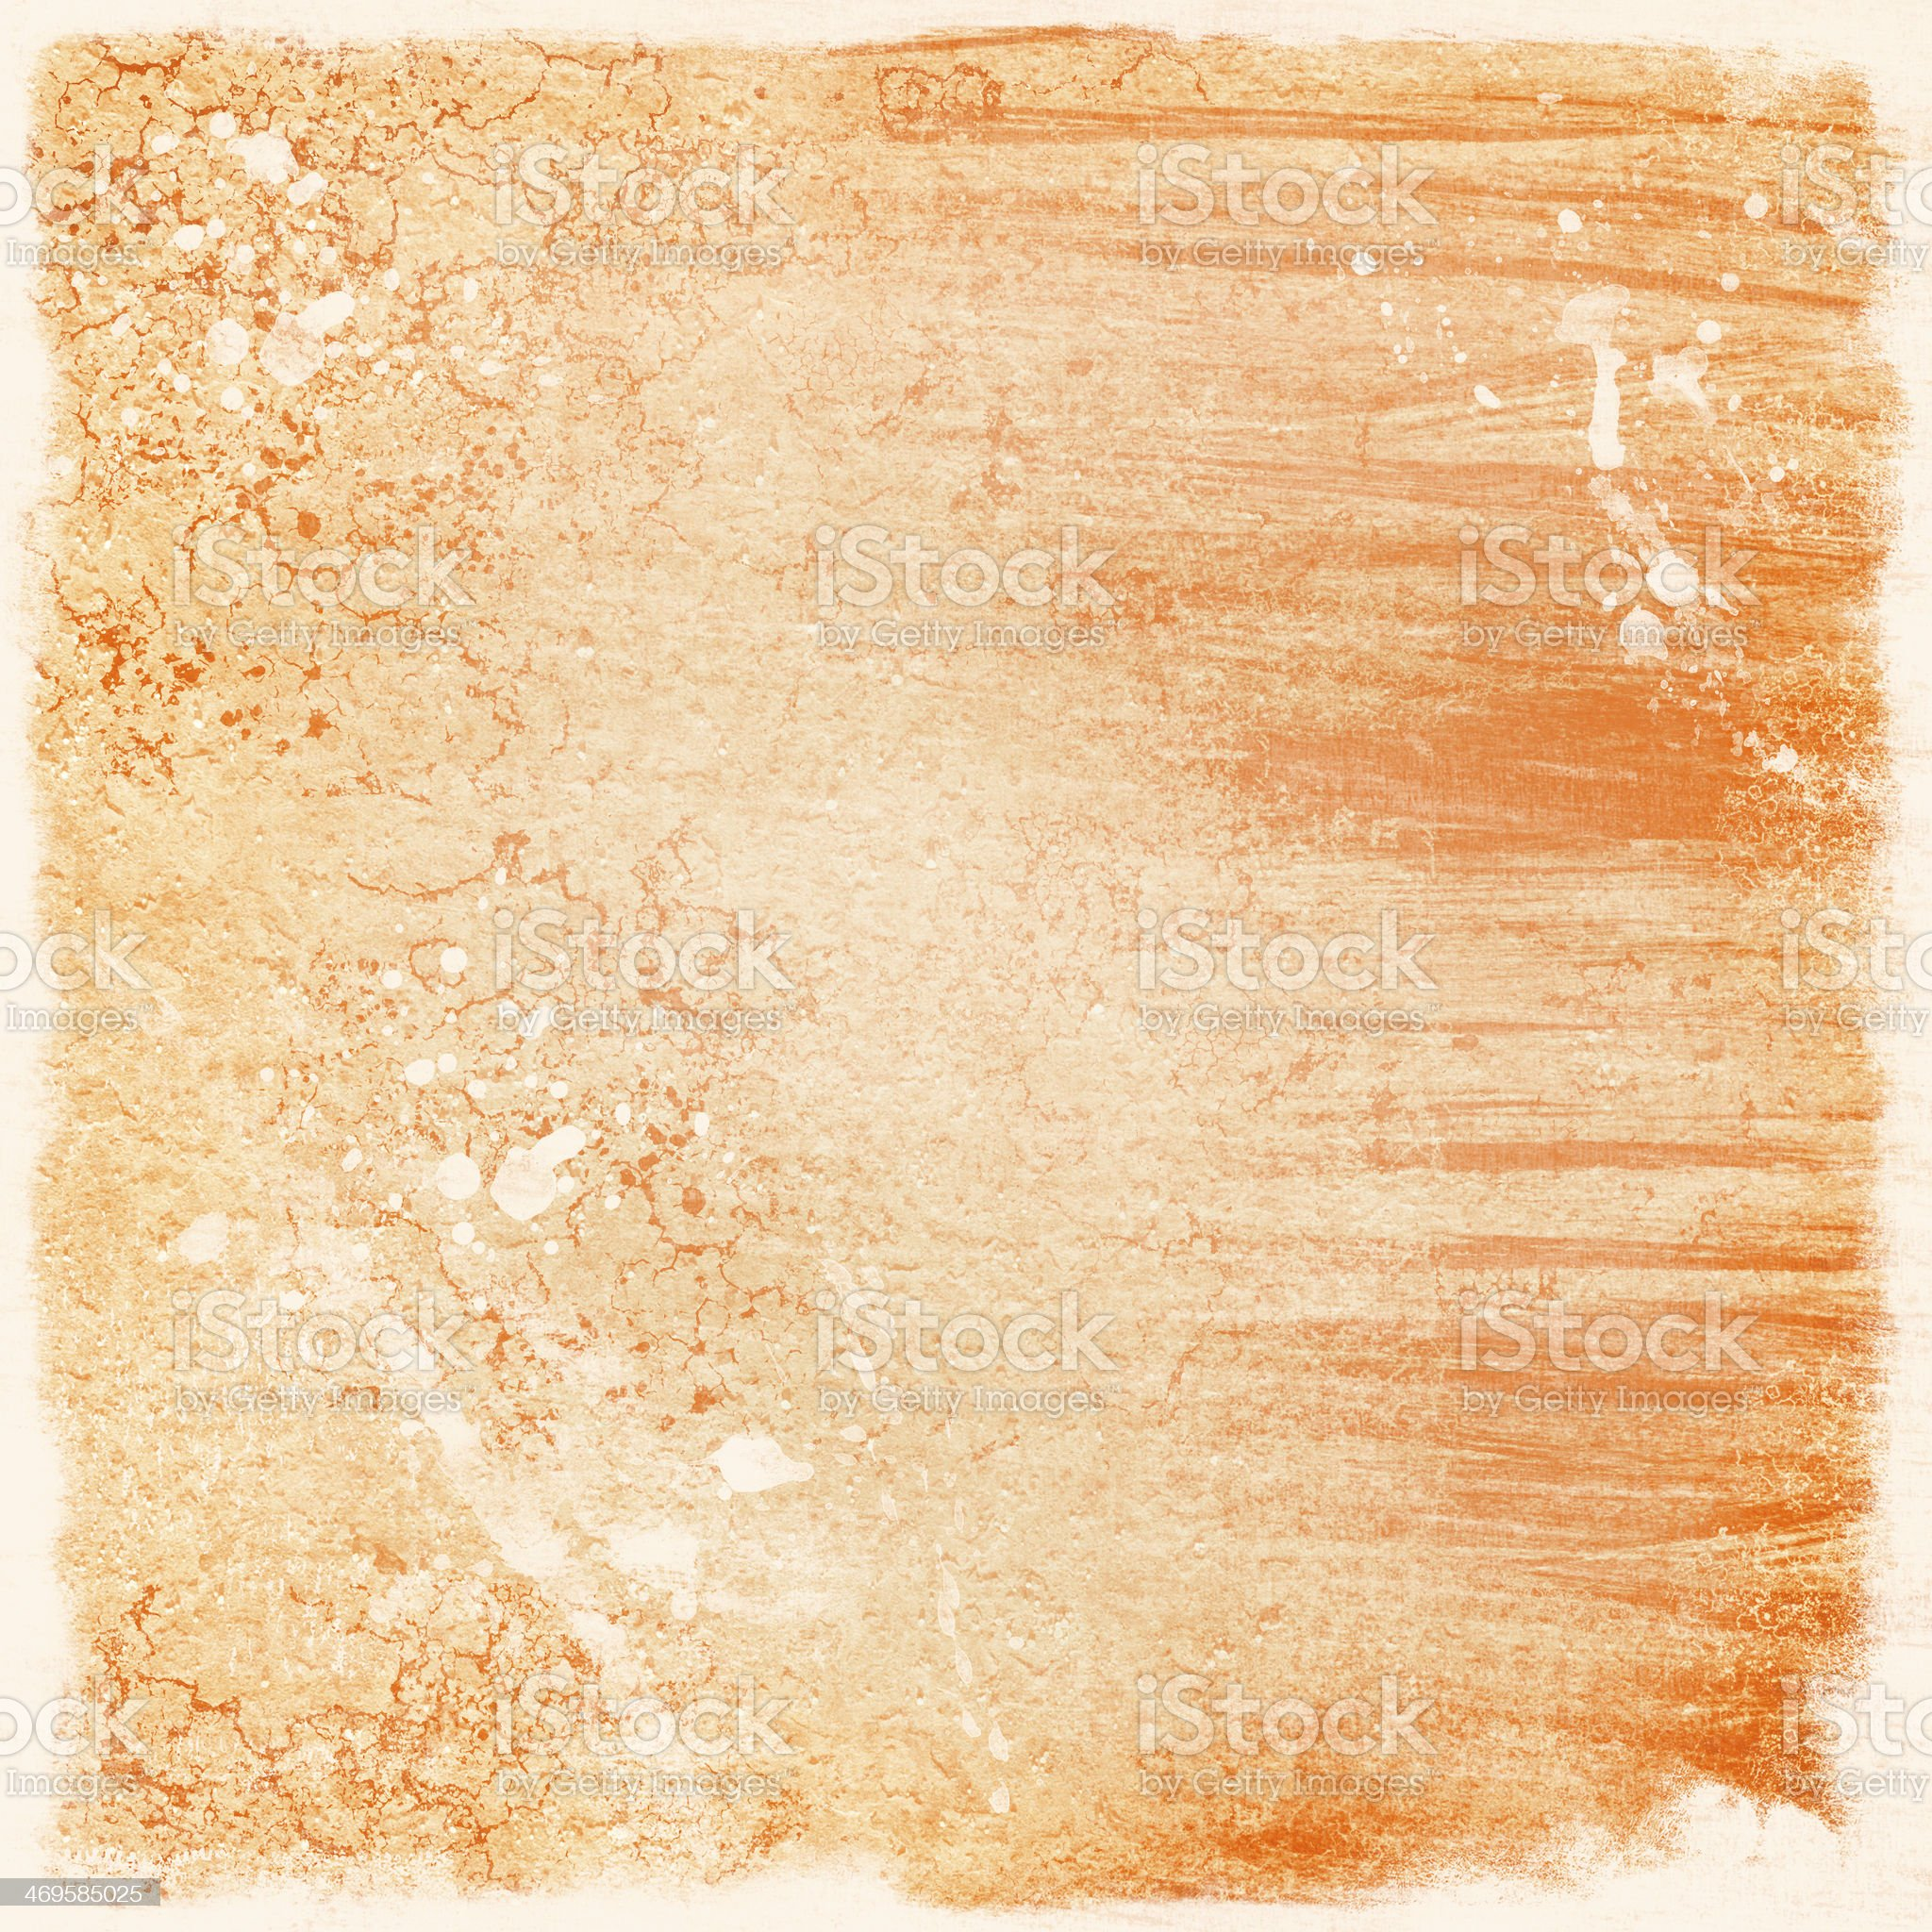 Detailed red grunge background royalty-free stock photo